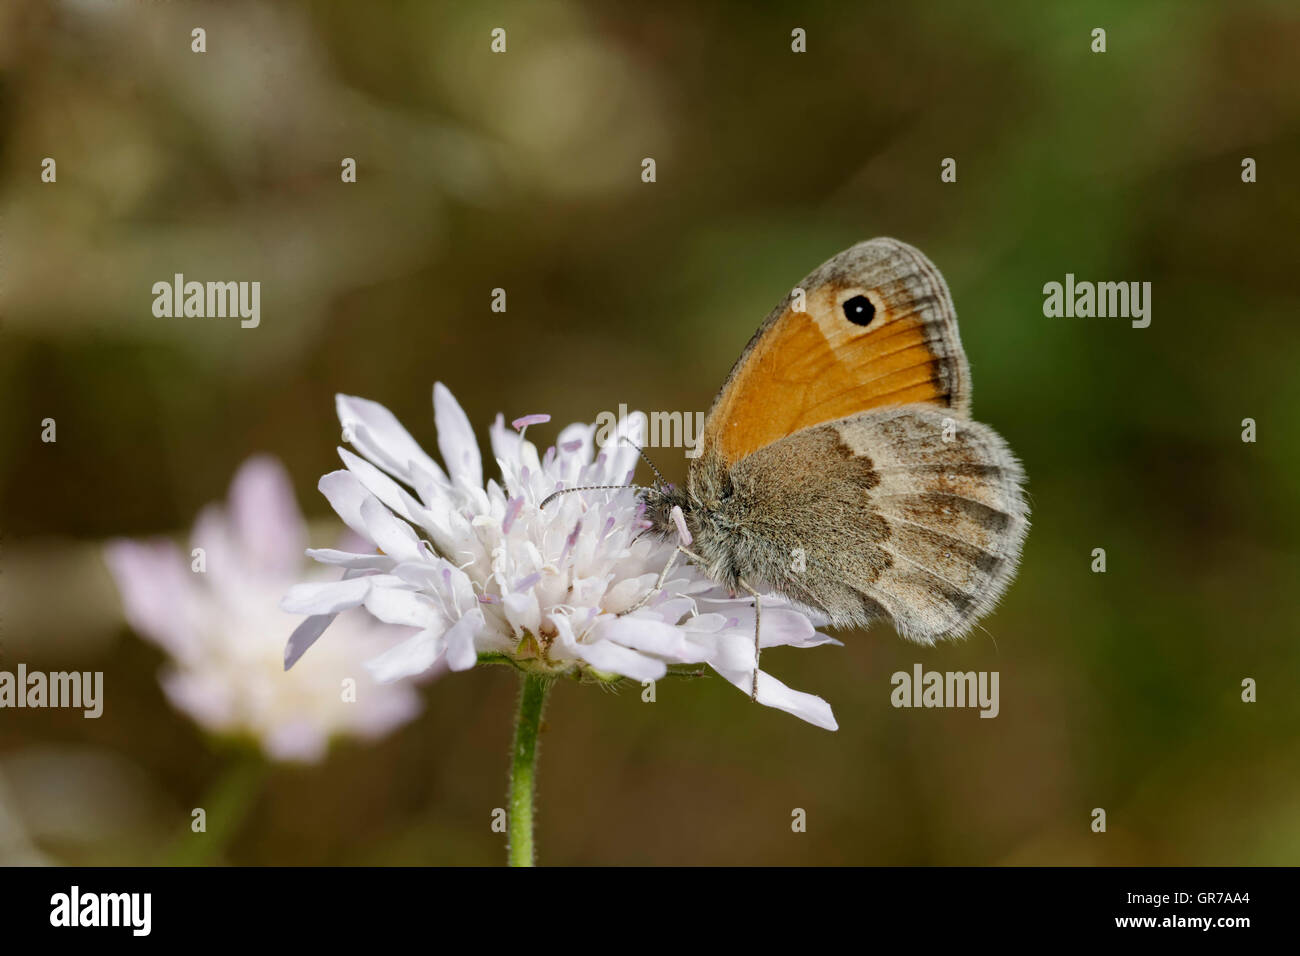 Coenonympha Pamphilus, Small Heath Butterfly, European Butterfly - Stock Image